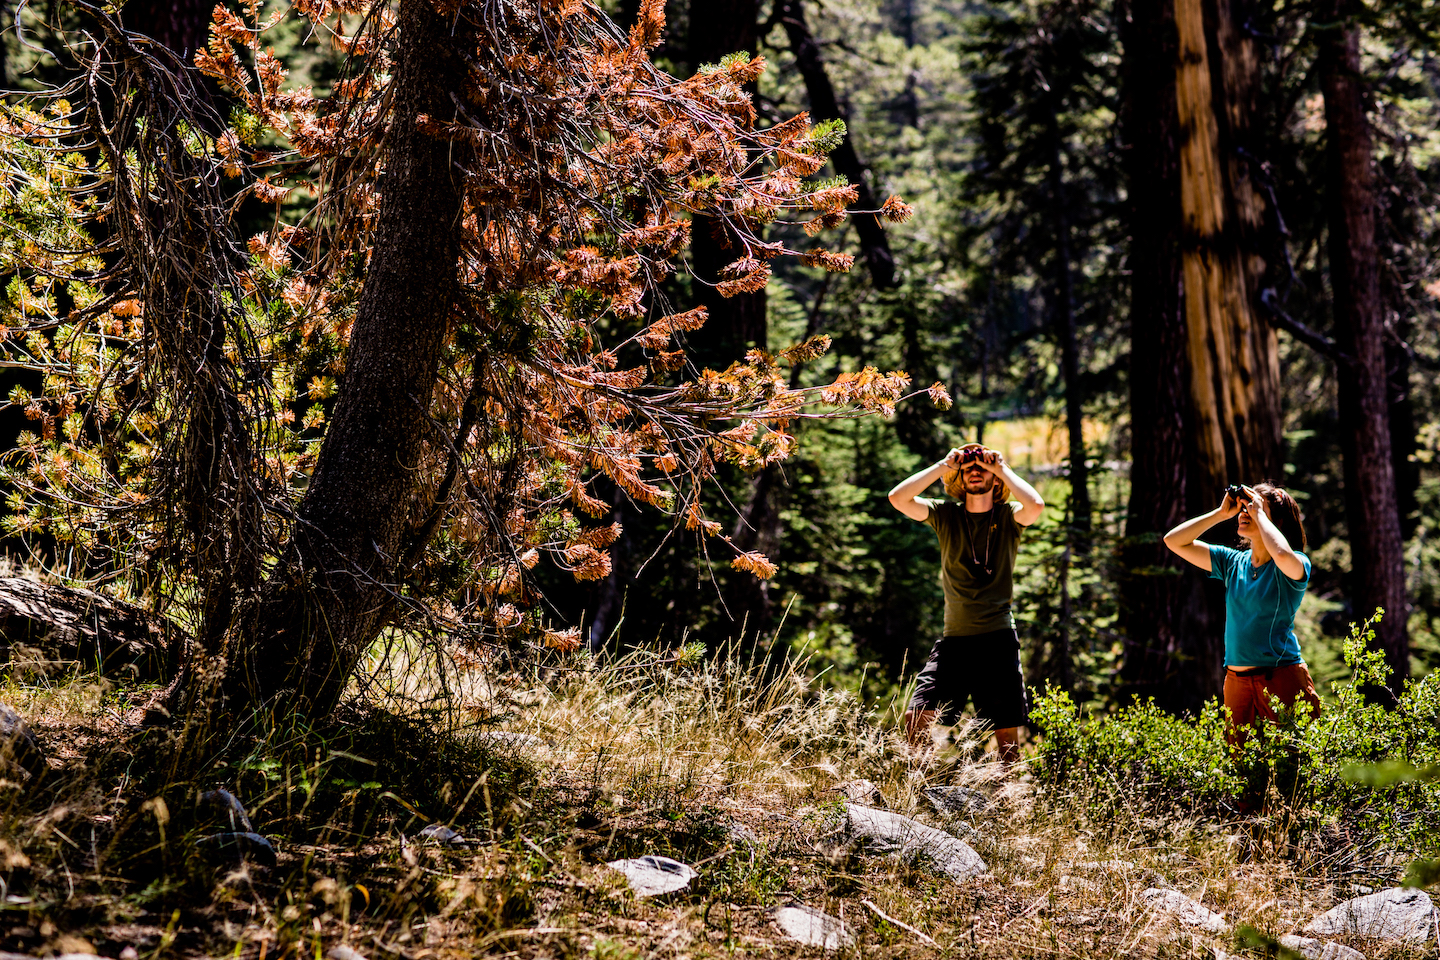 Two researchers survey trees through binoculars in Sequoia and Kings Canyon National Park.